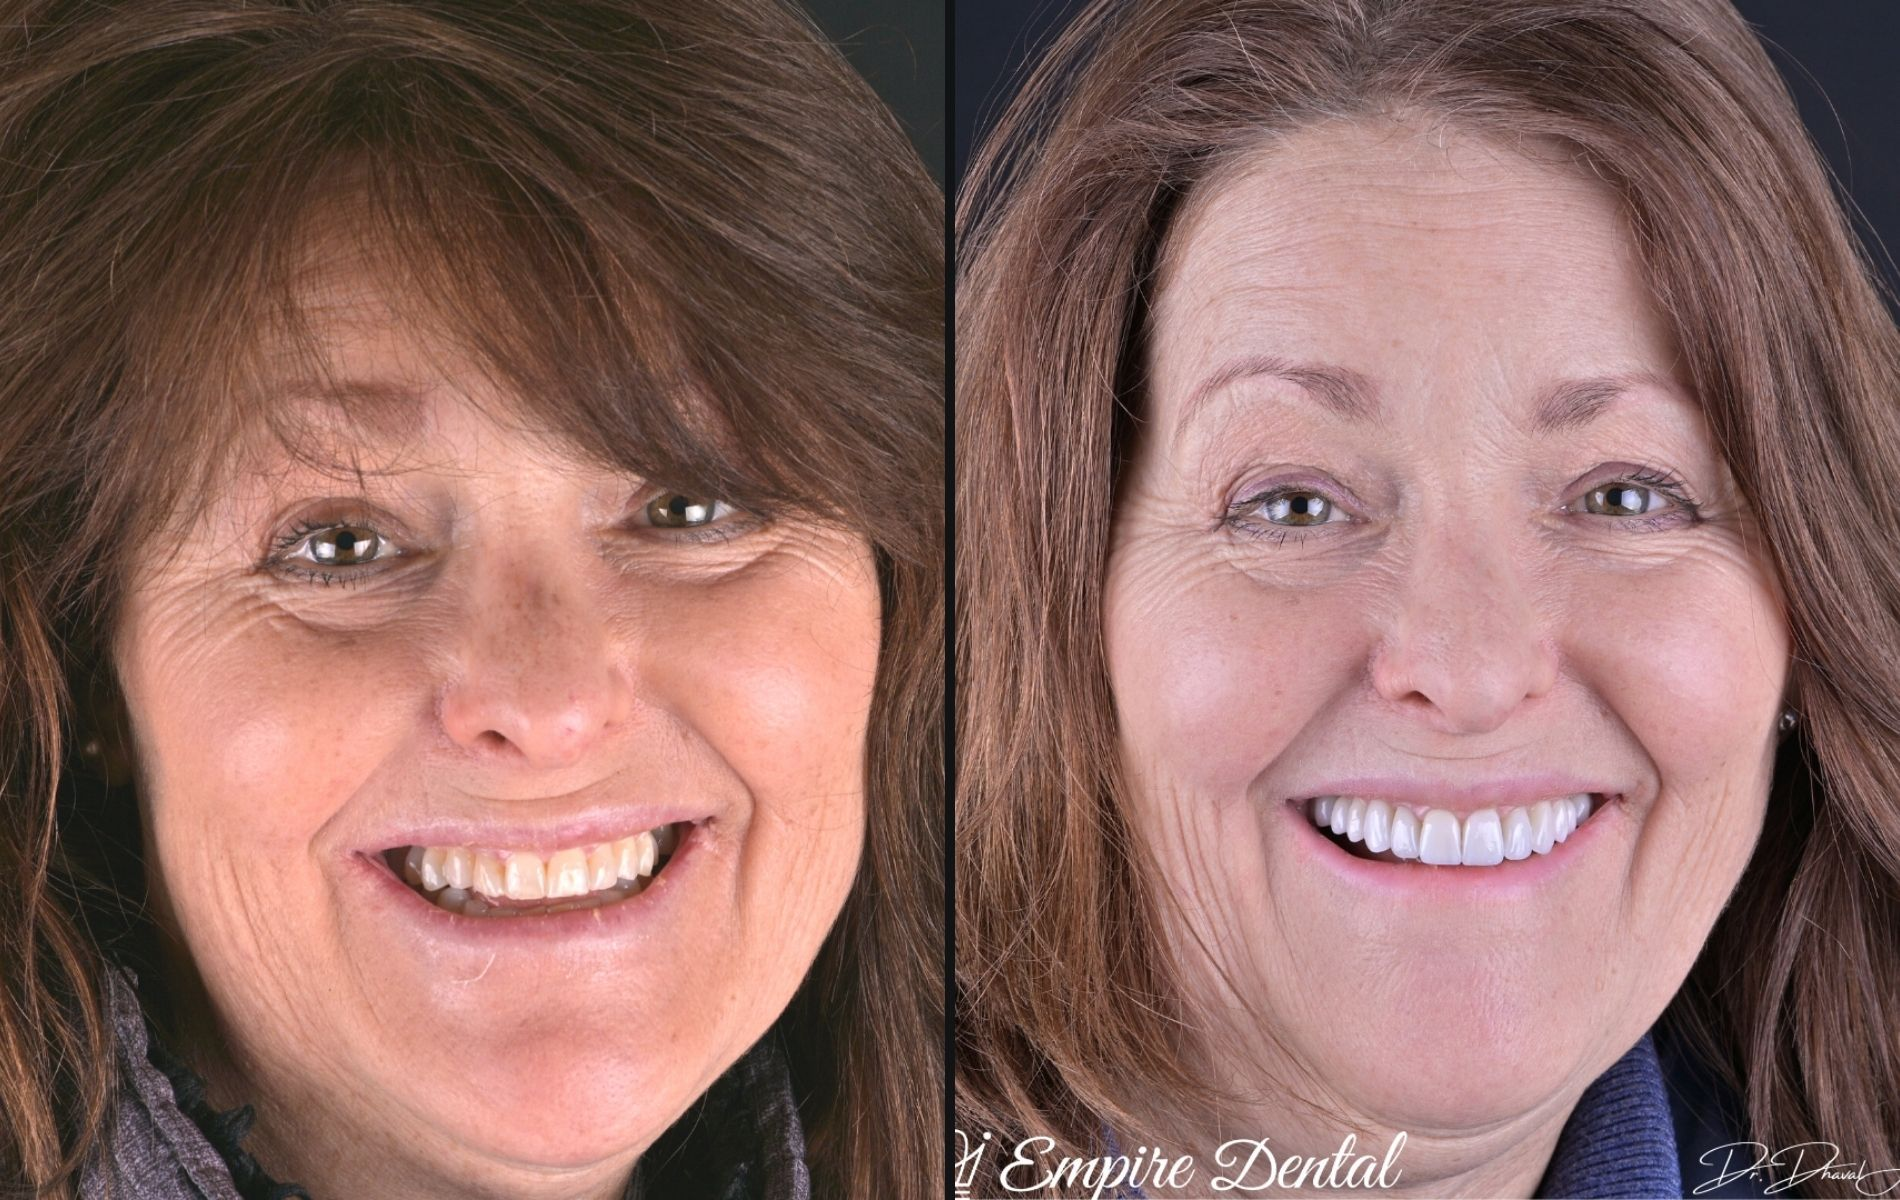 Empire Dental - Tracy before and after (1)